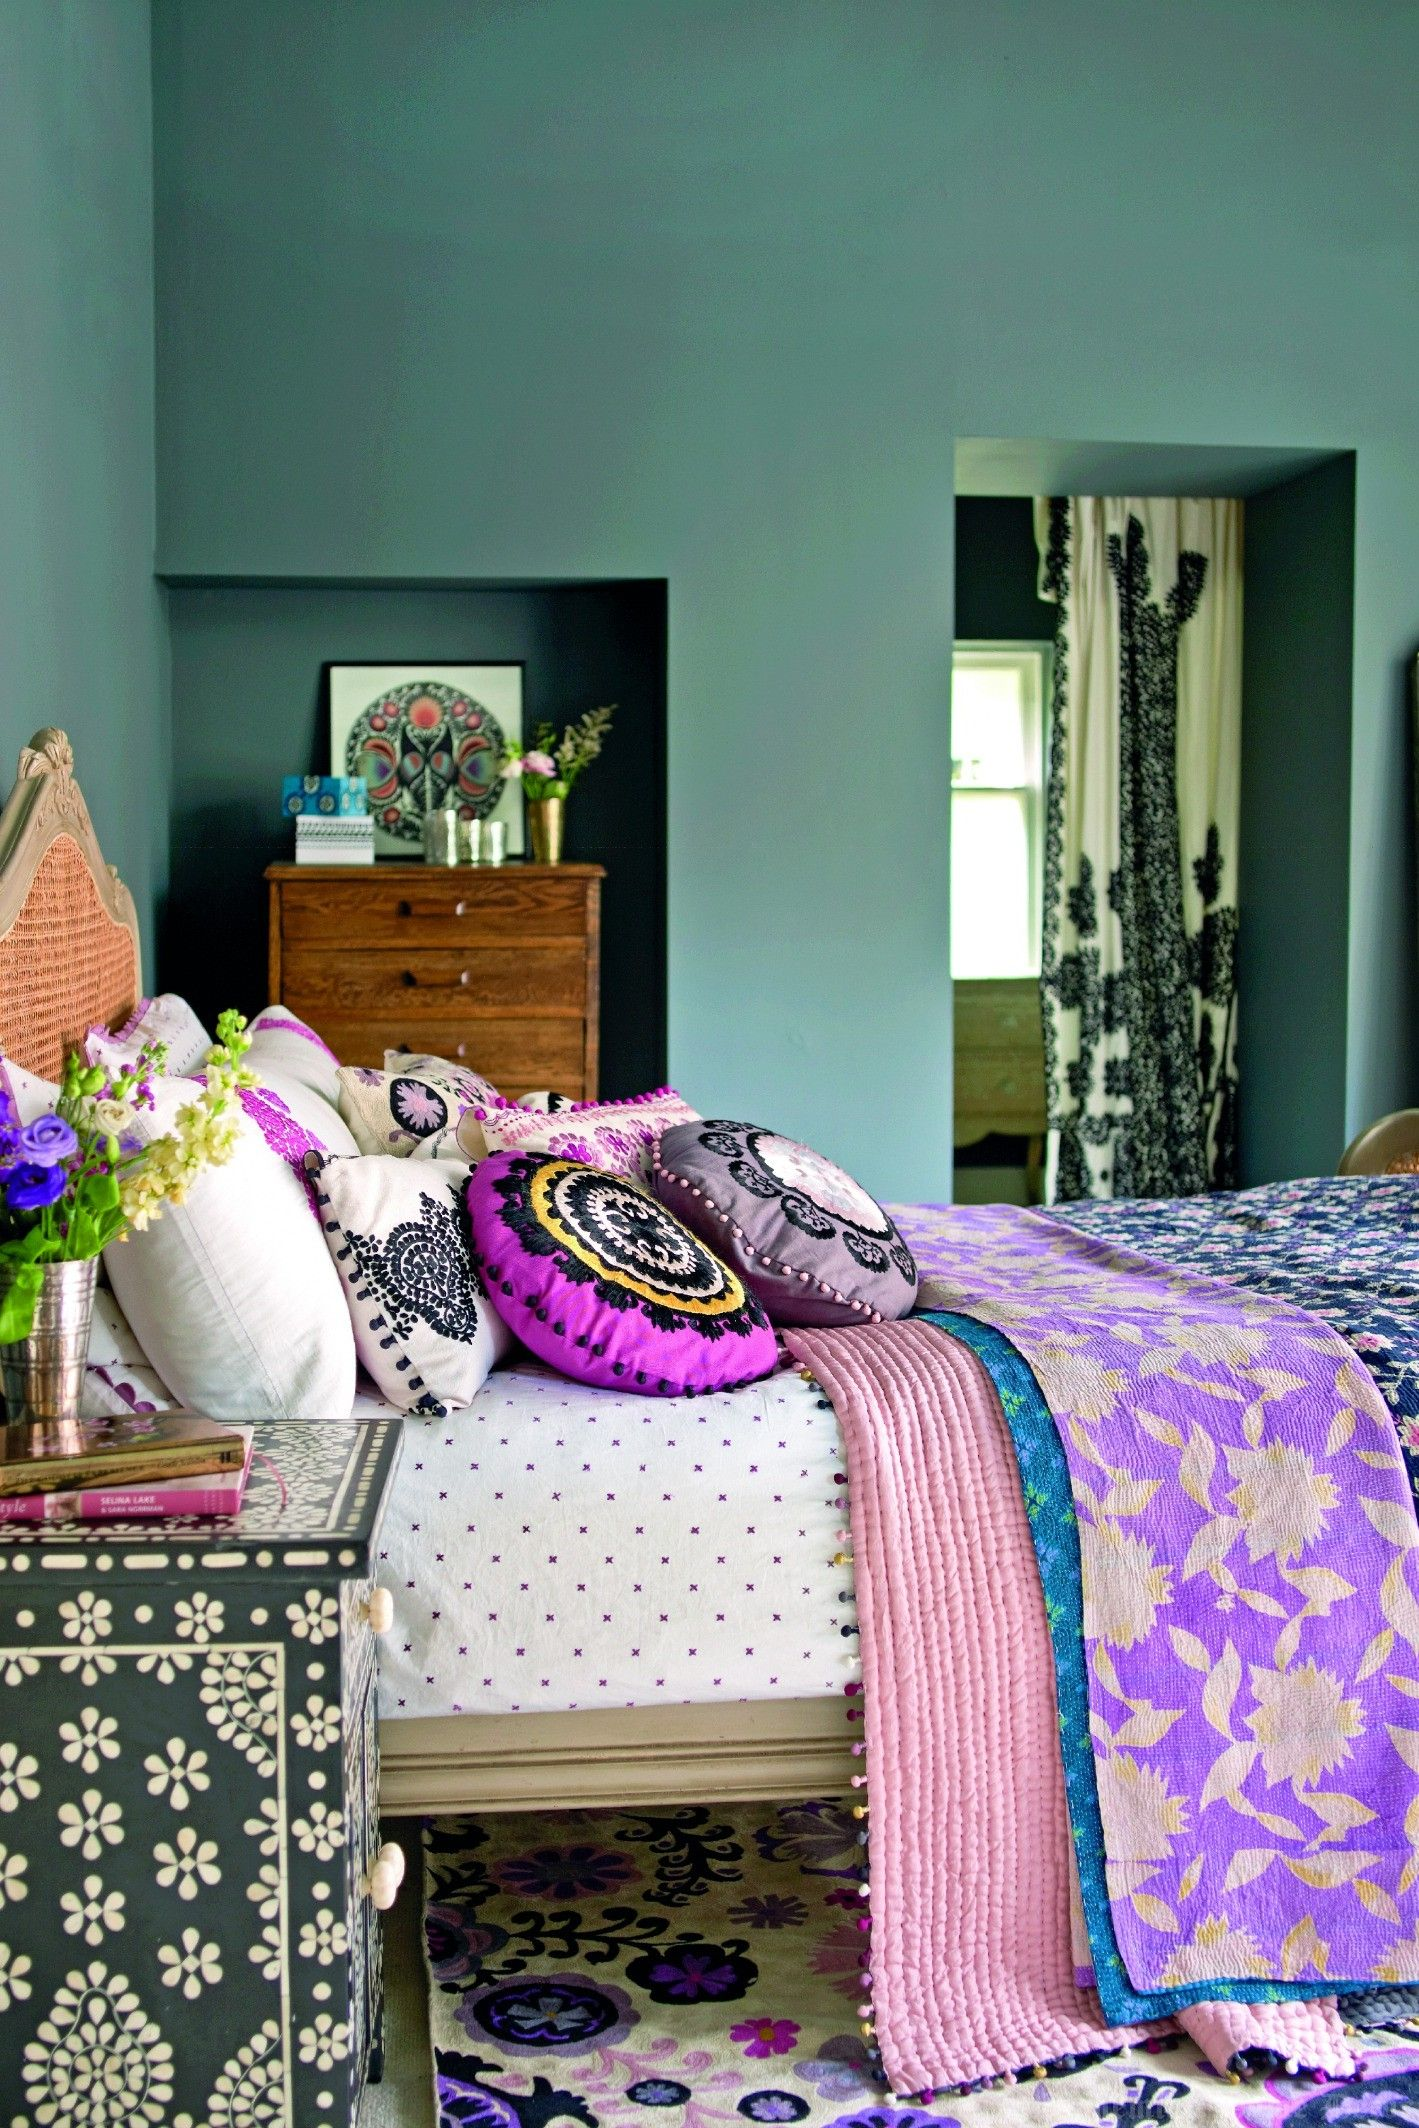 Bohemian Home Decor Strategies For Beginners Oct 2020